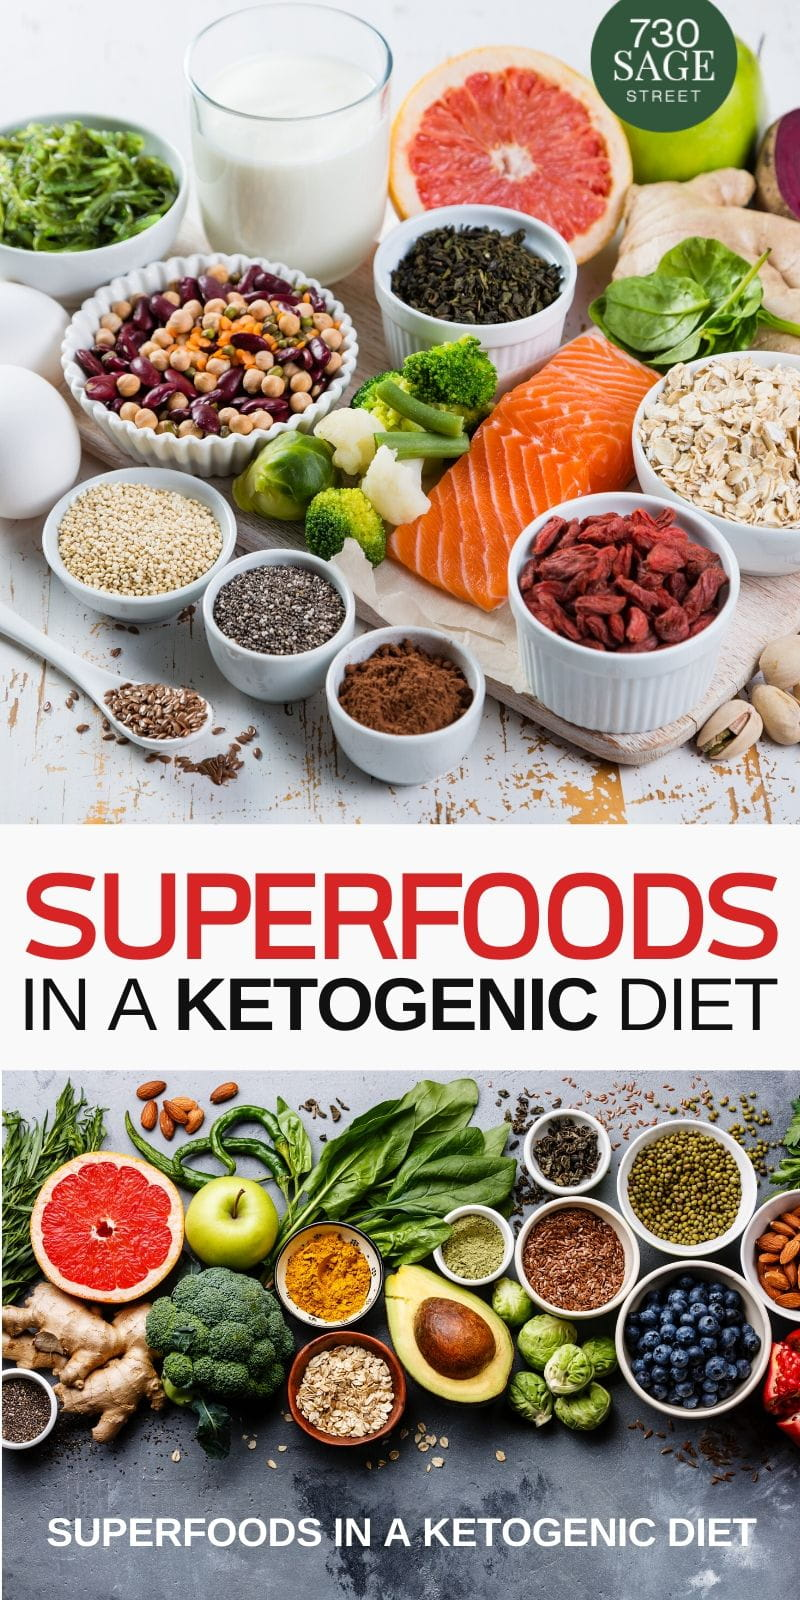 Superfoods in a Ketogenic Diet